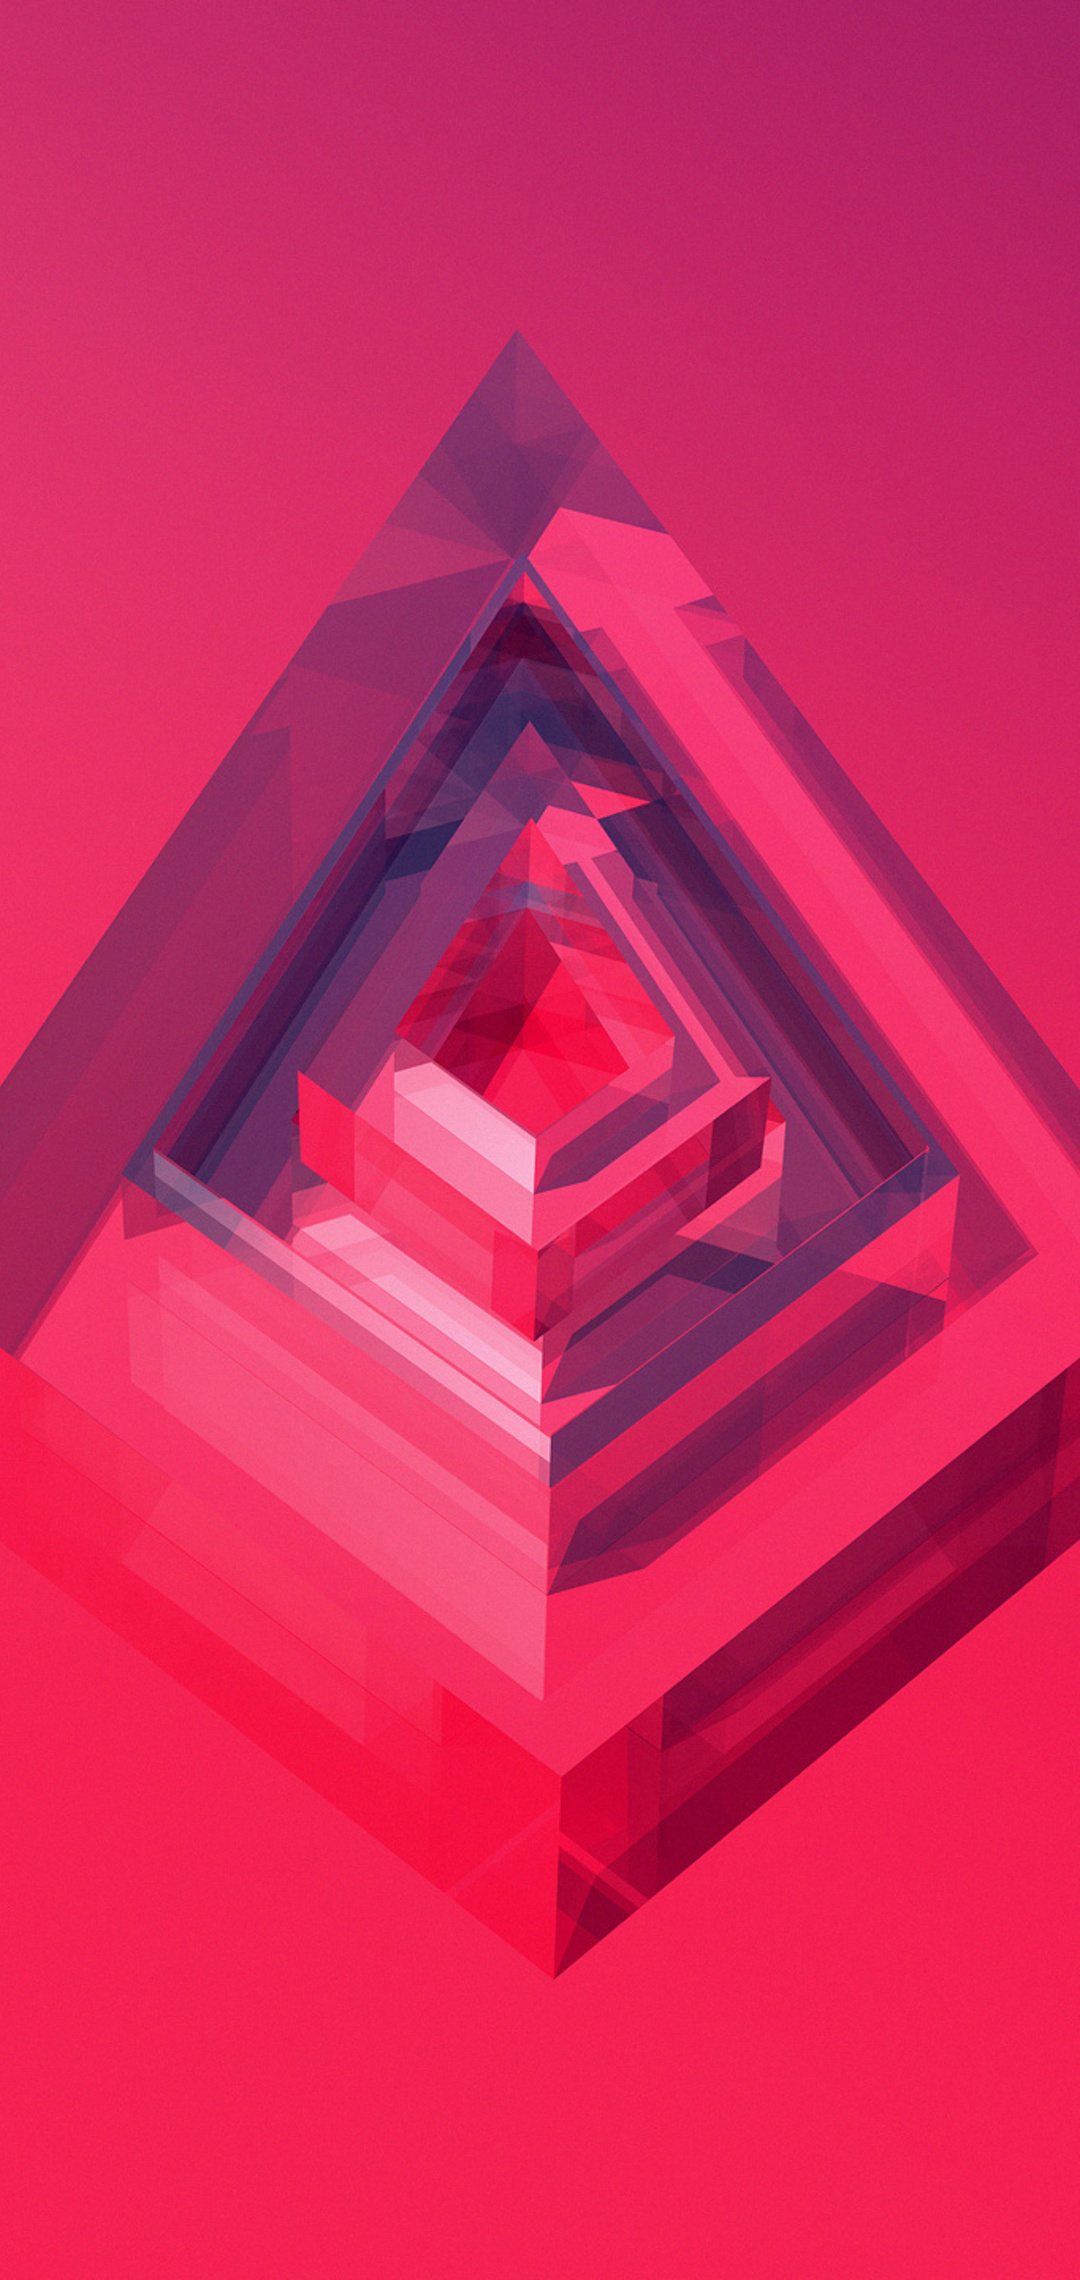 justin-maller-abstract-shape-background-ey.jpg